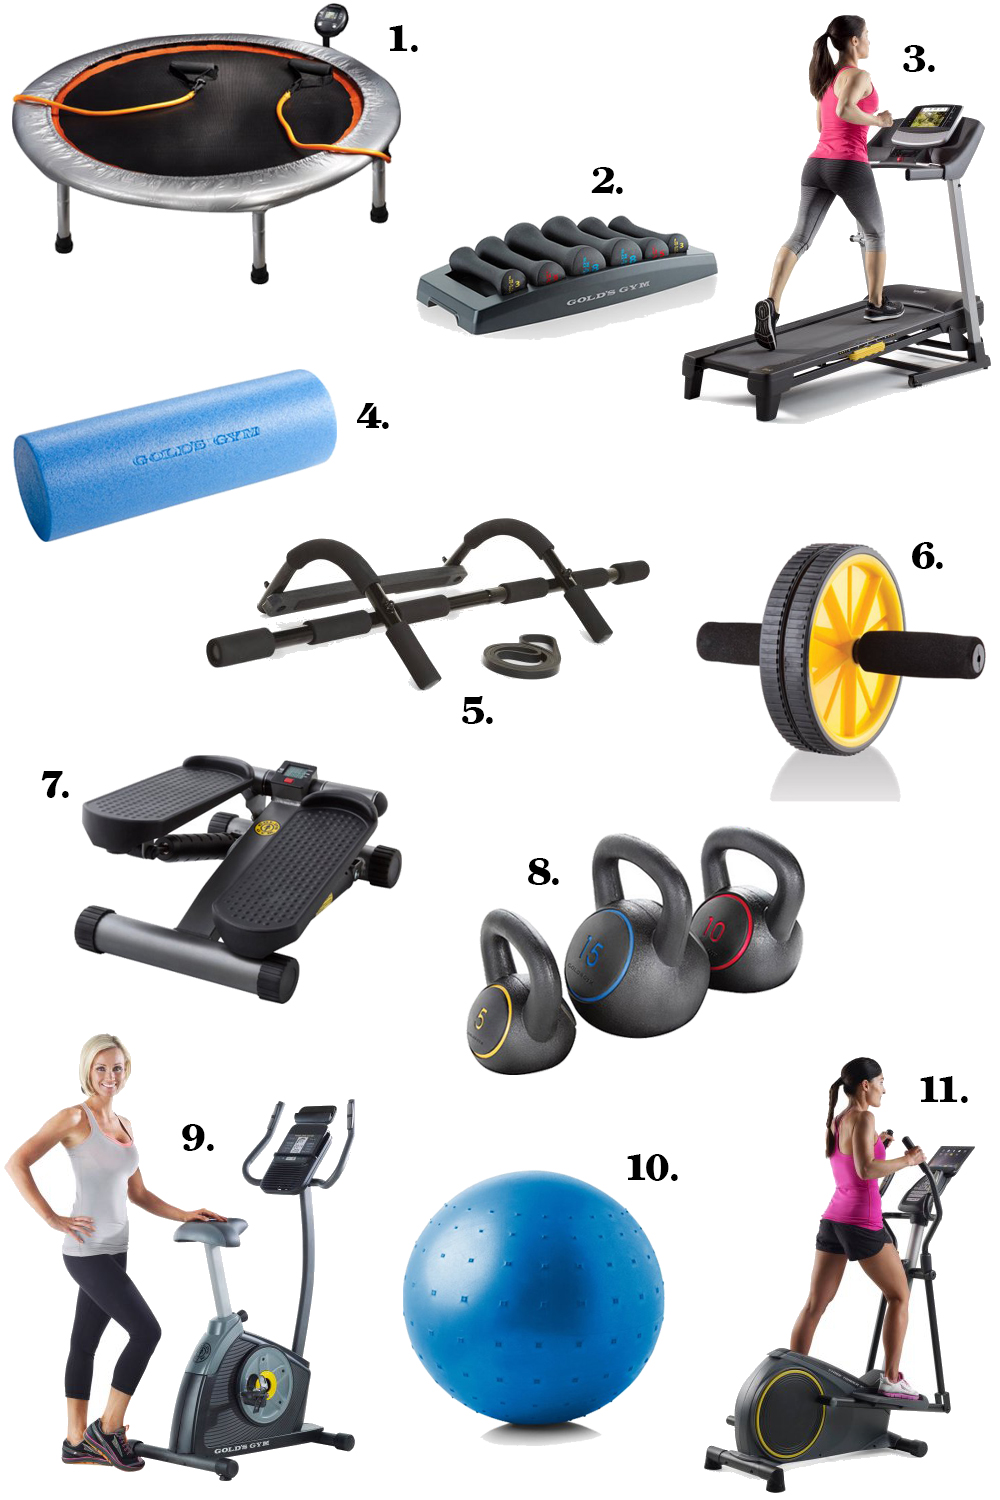 Southern mom loves resolutions made easy home fitness